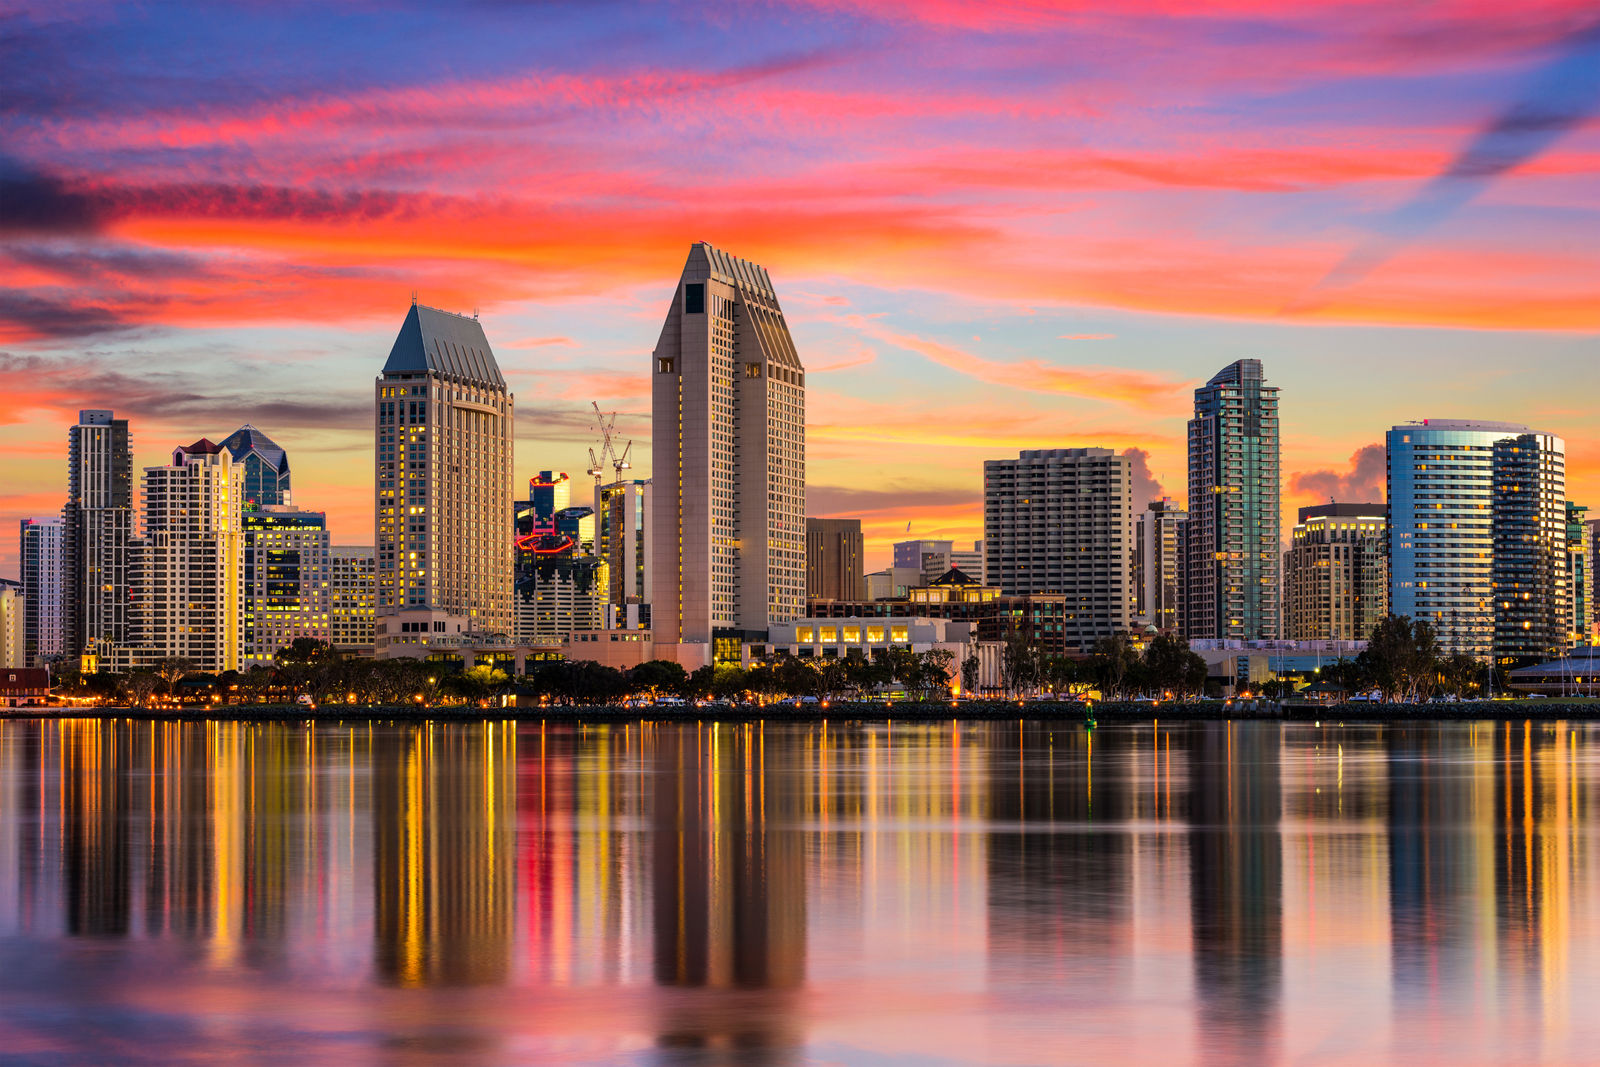 It will be bad news for Ron Burgundy, but San Diego, California, came in at No. 20 on Terminix's list. (Thinkstock)